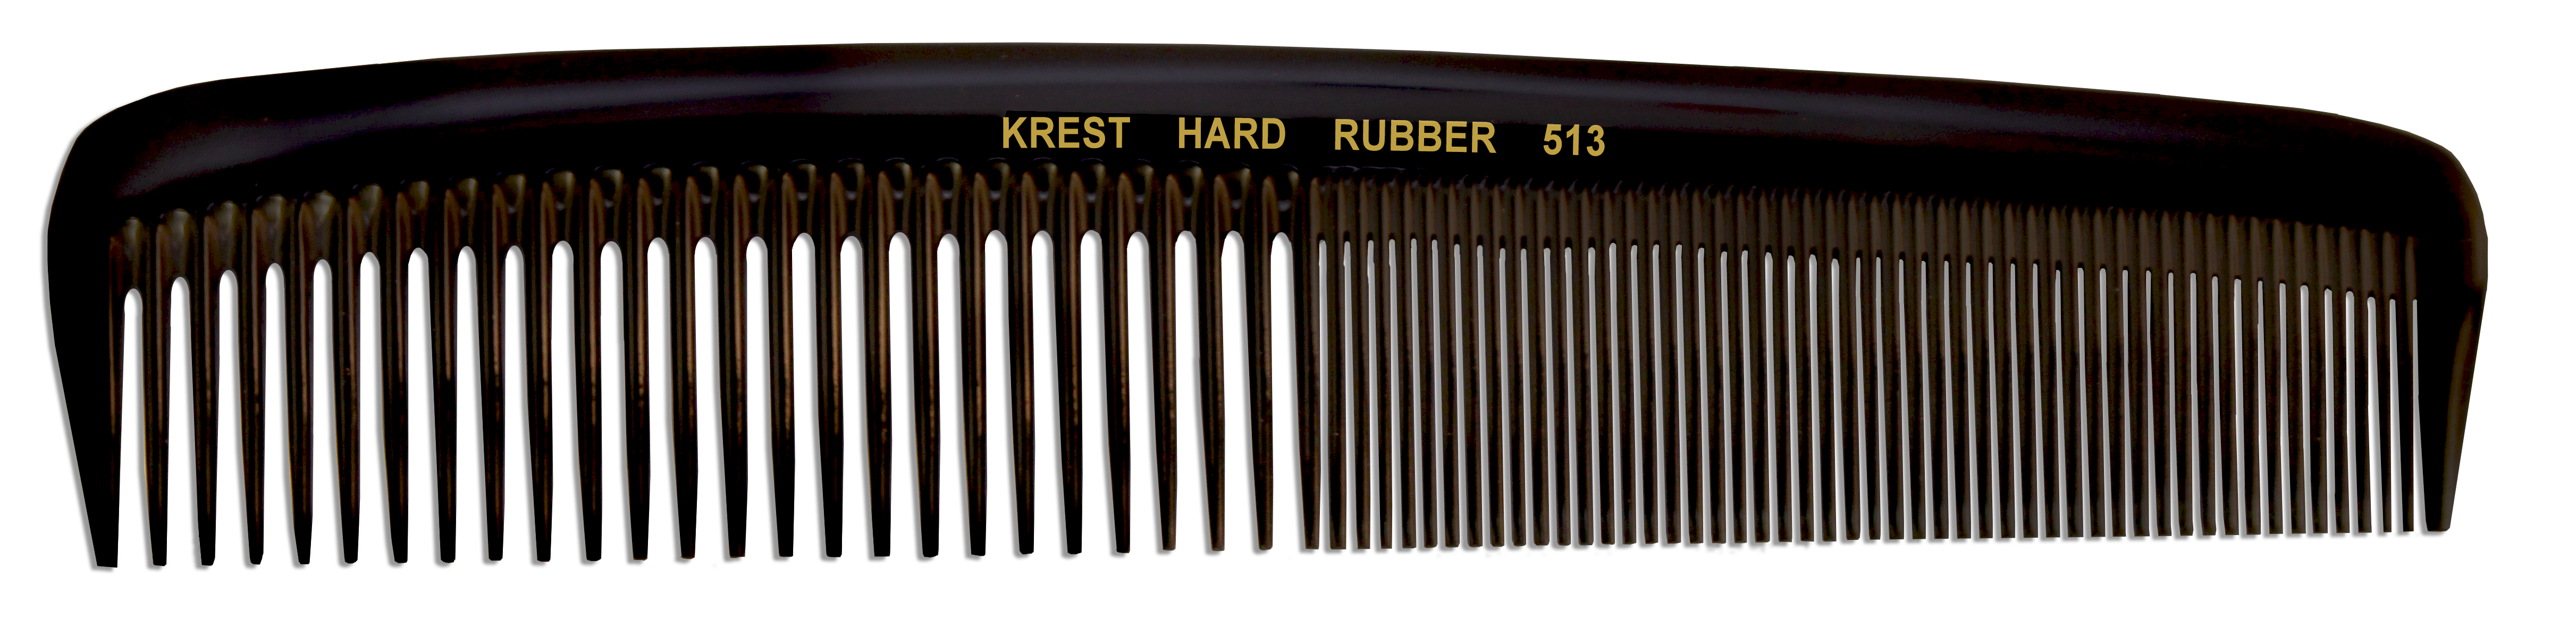 No. 513 Krest Hard Rubber Combs